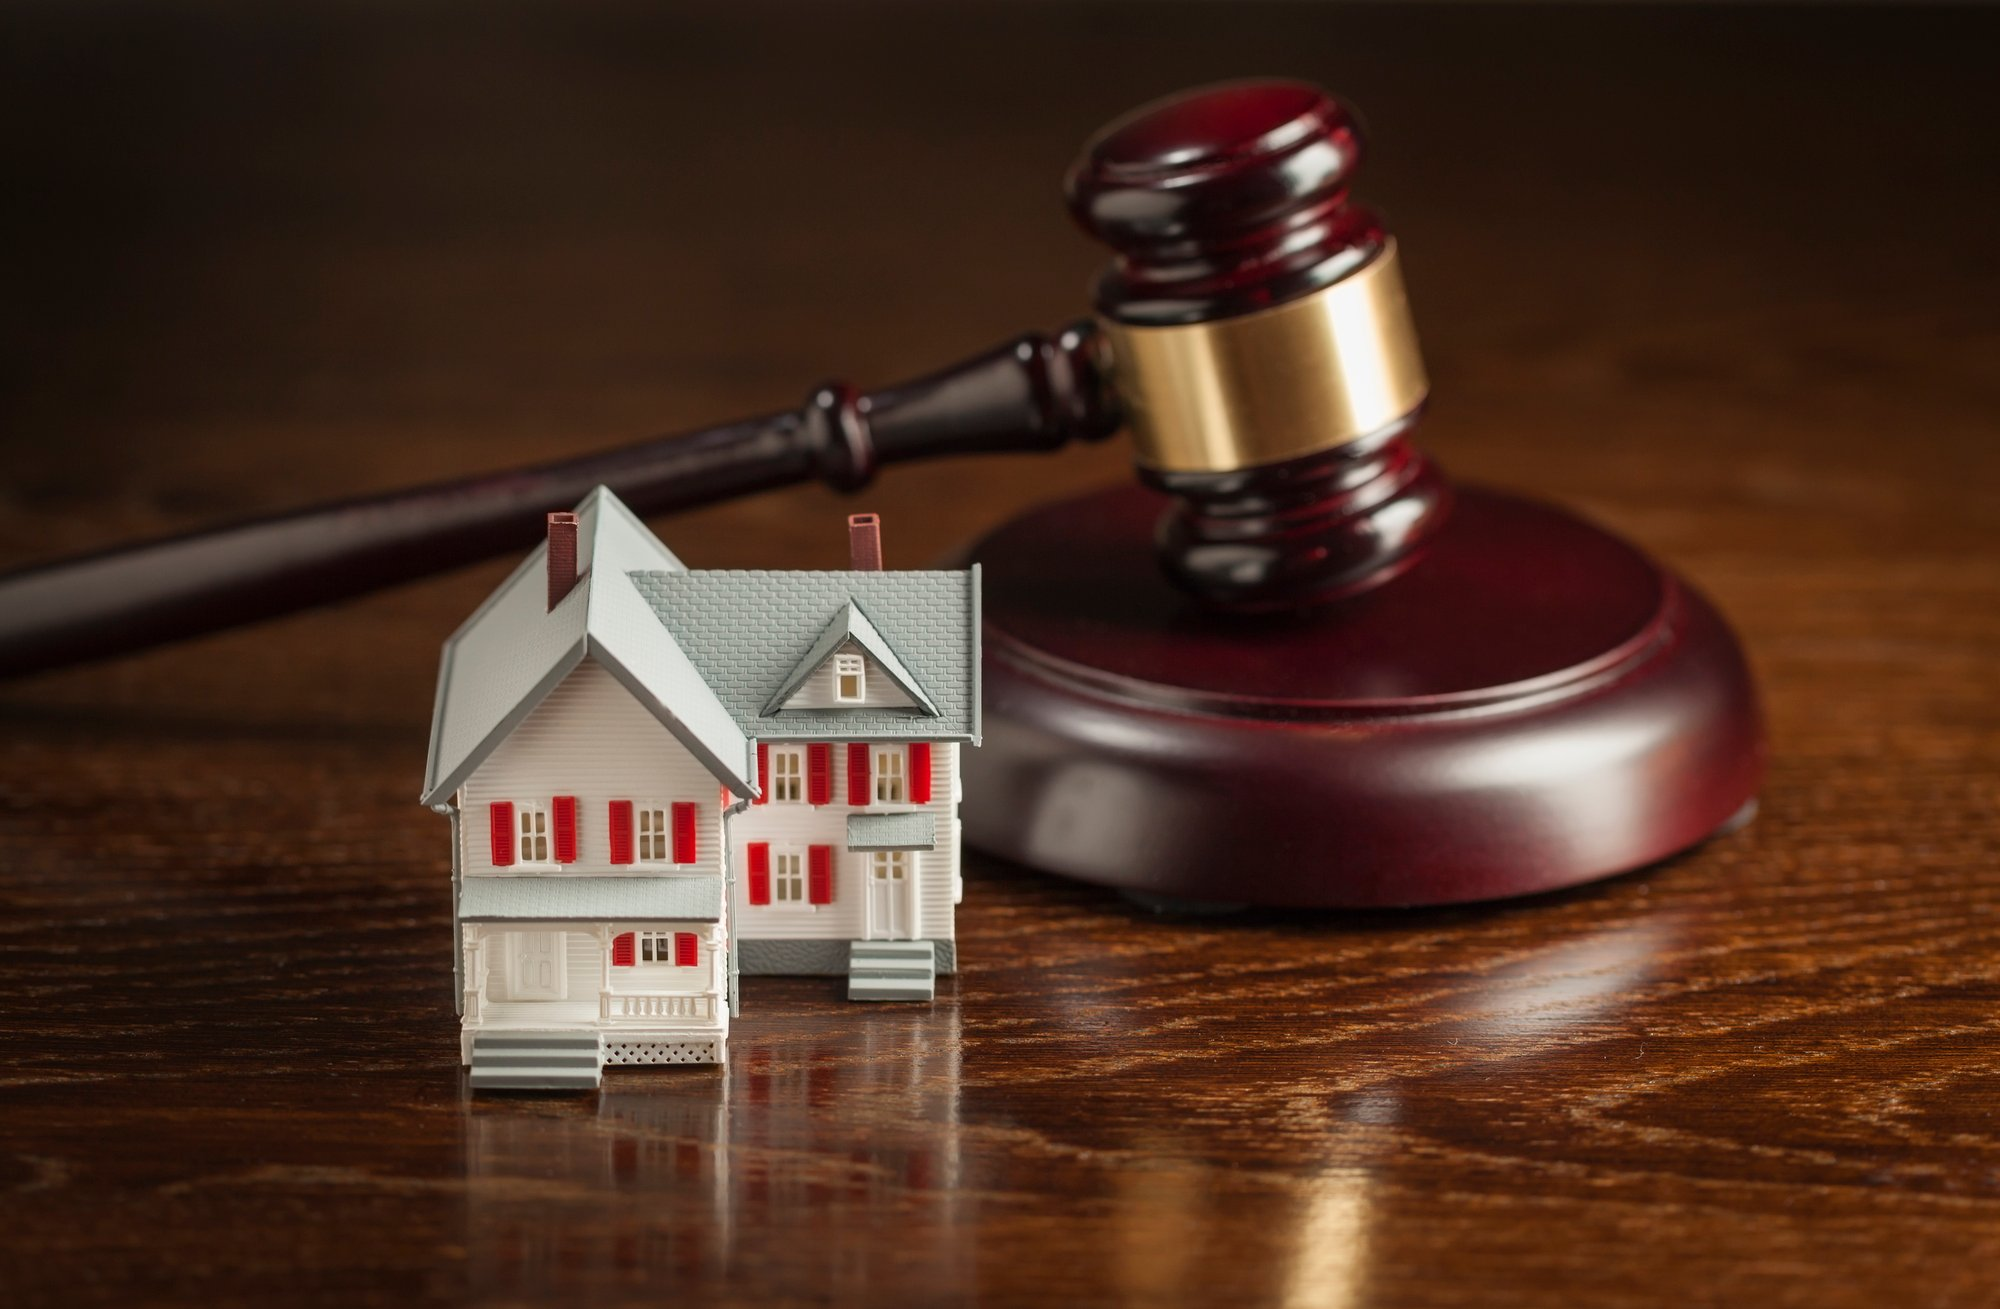 Gavel and Small Model House on Table